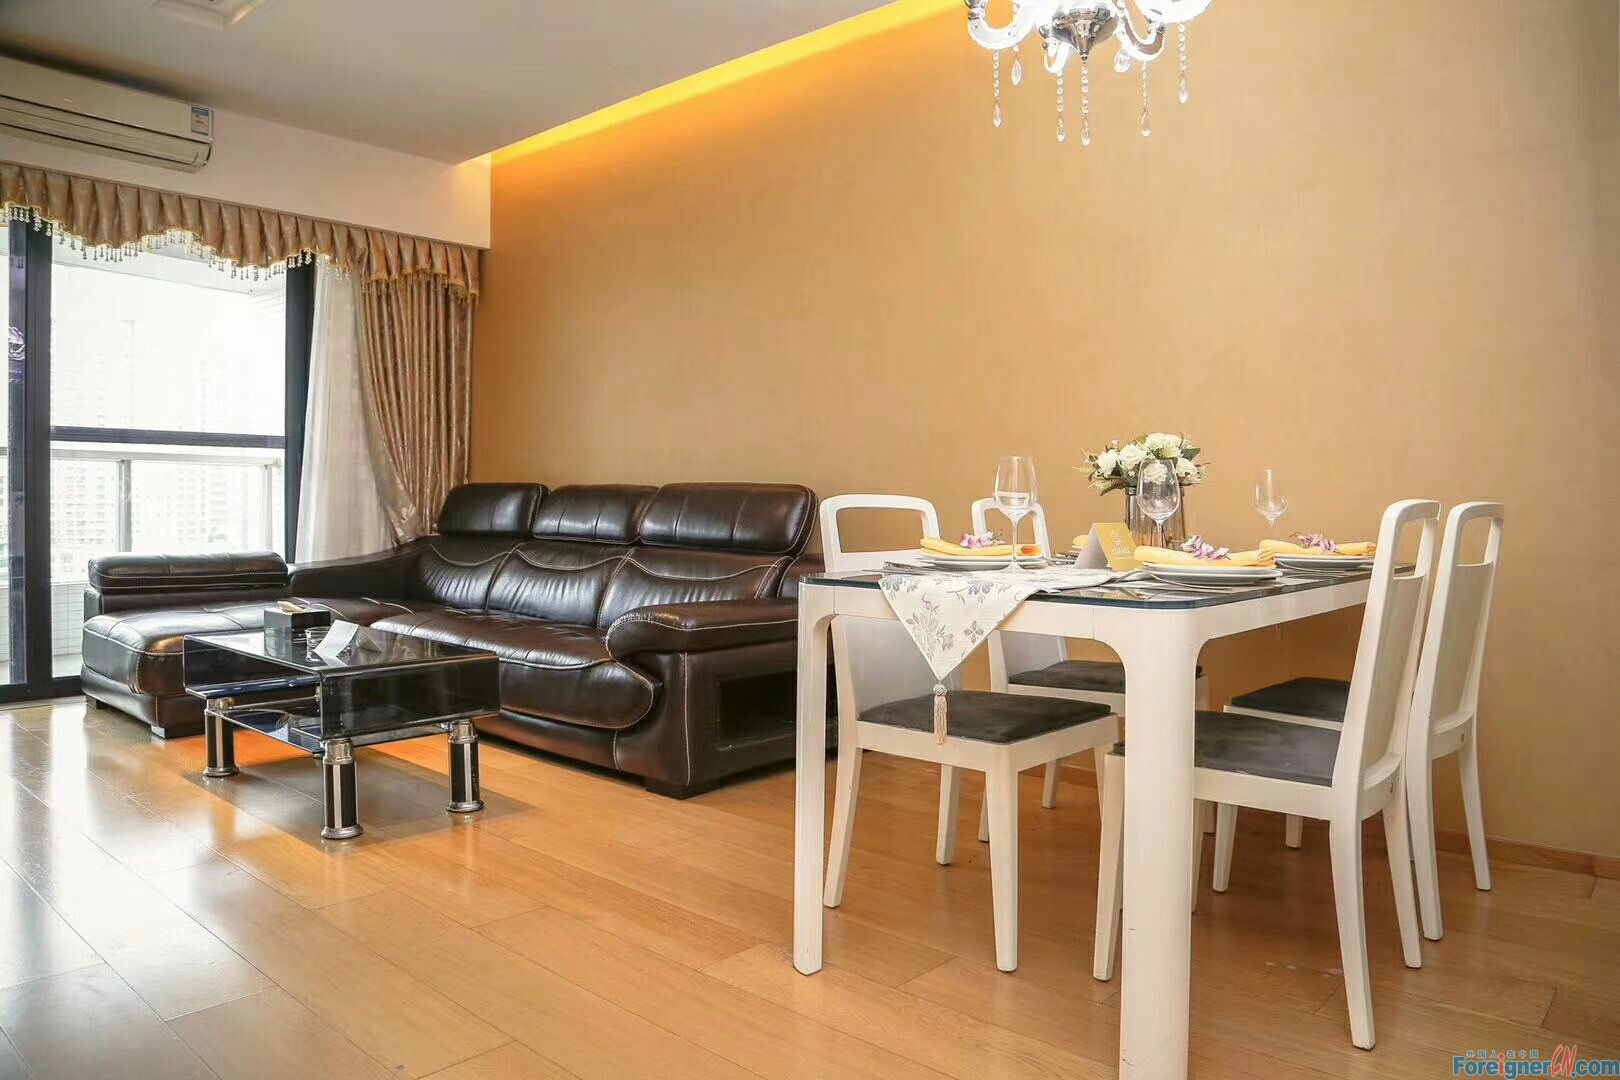 Starry Winking-nice 2brs in ZJNT of CBD area,real 2brs,morden decorate,high floor,facing sourth,nearby the metro station,gym,swimming pool etc.good conditon.